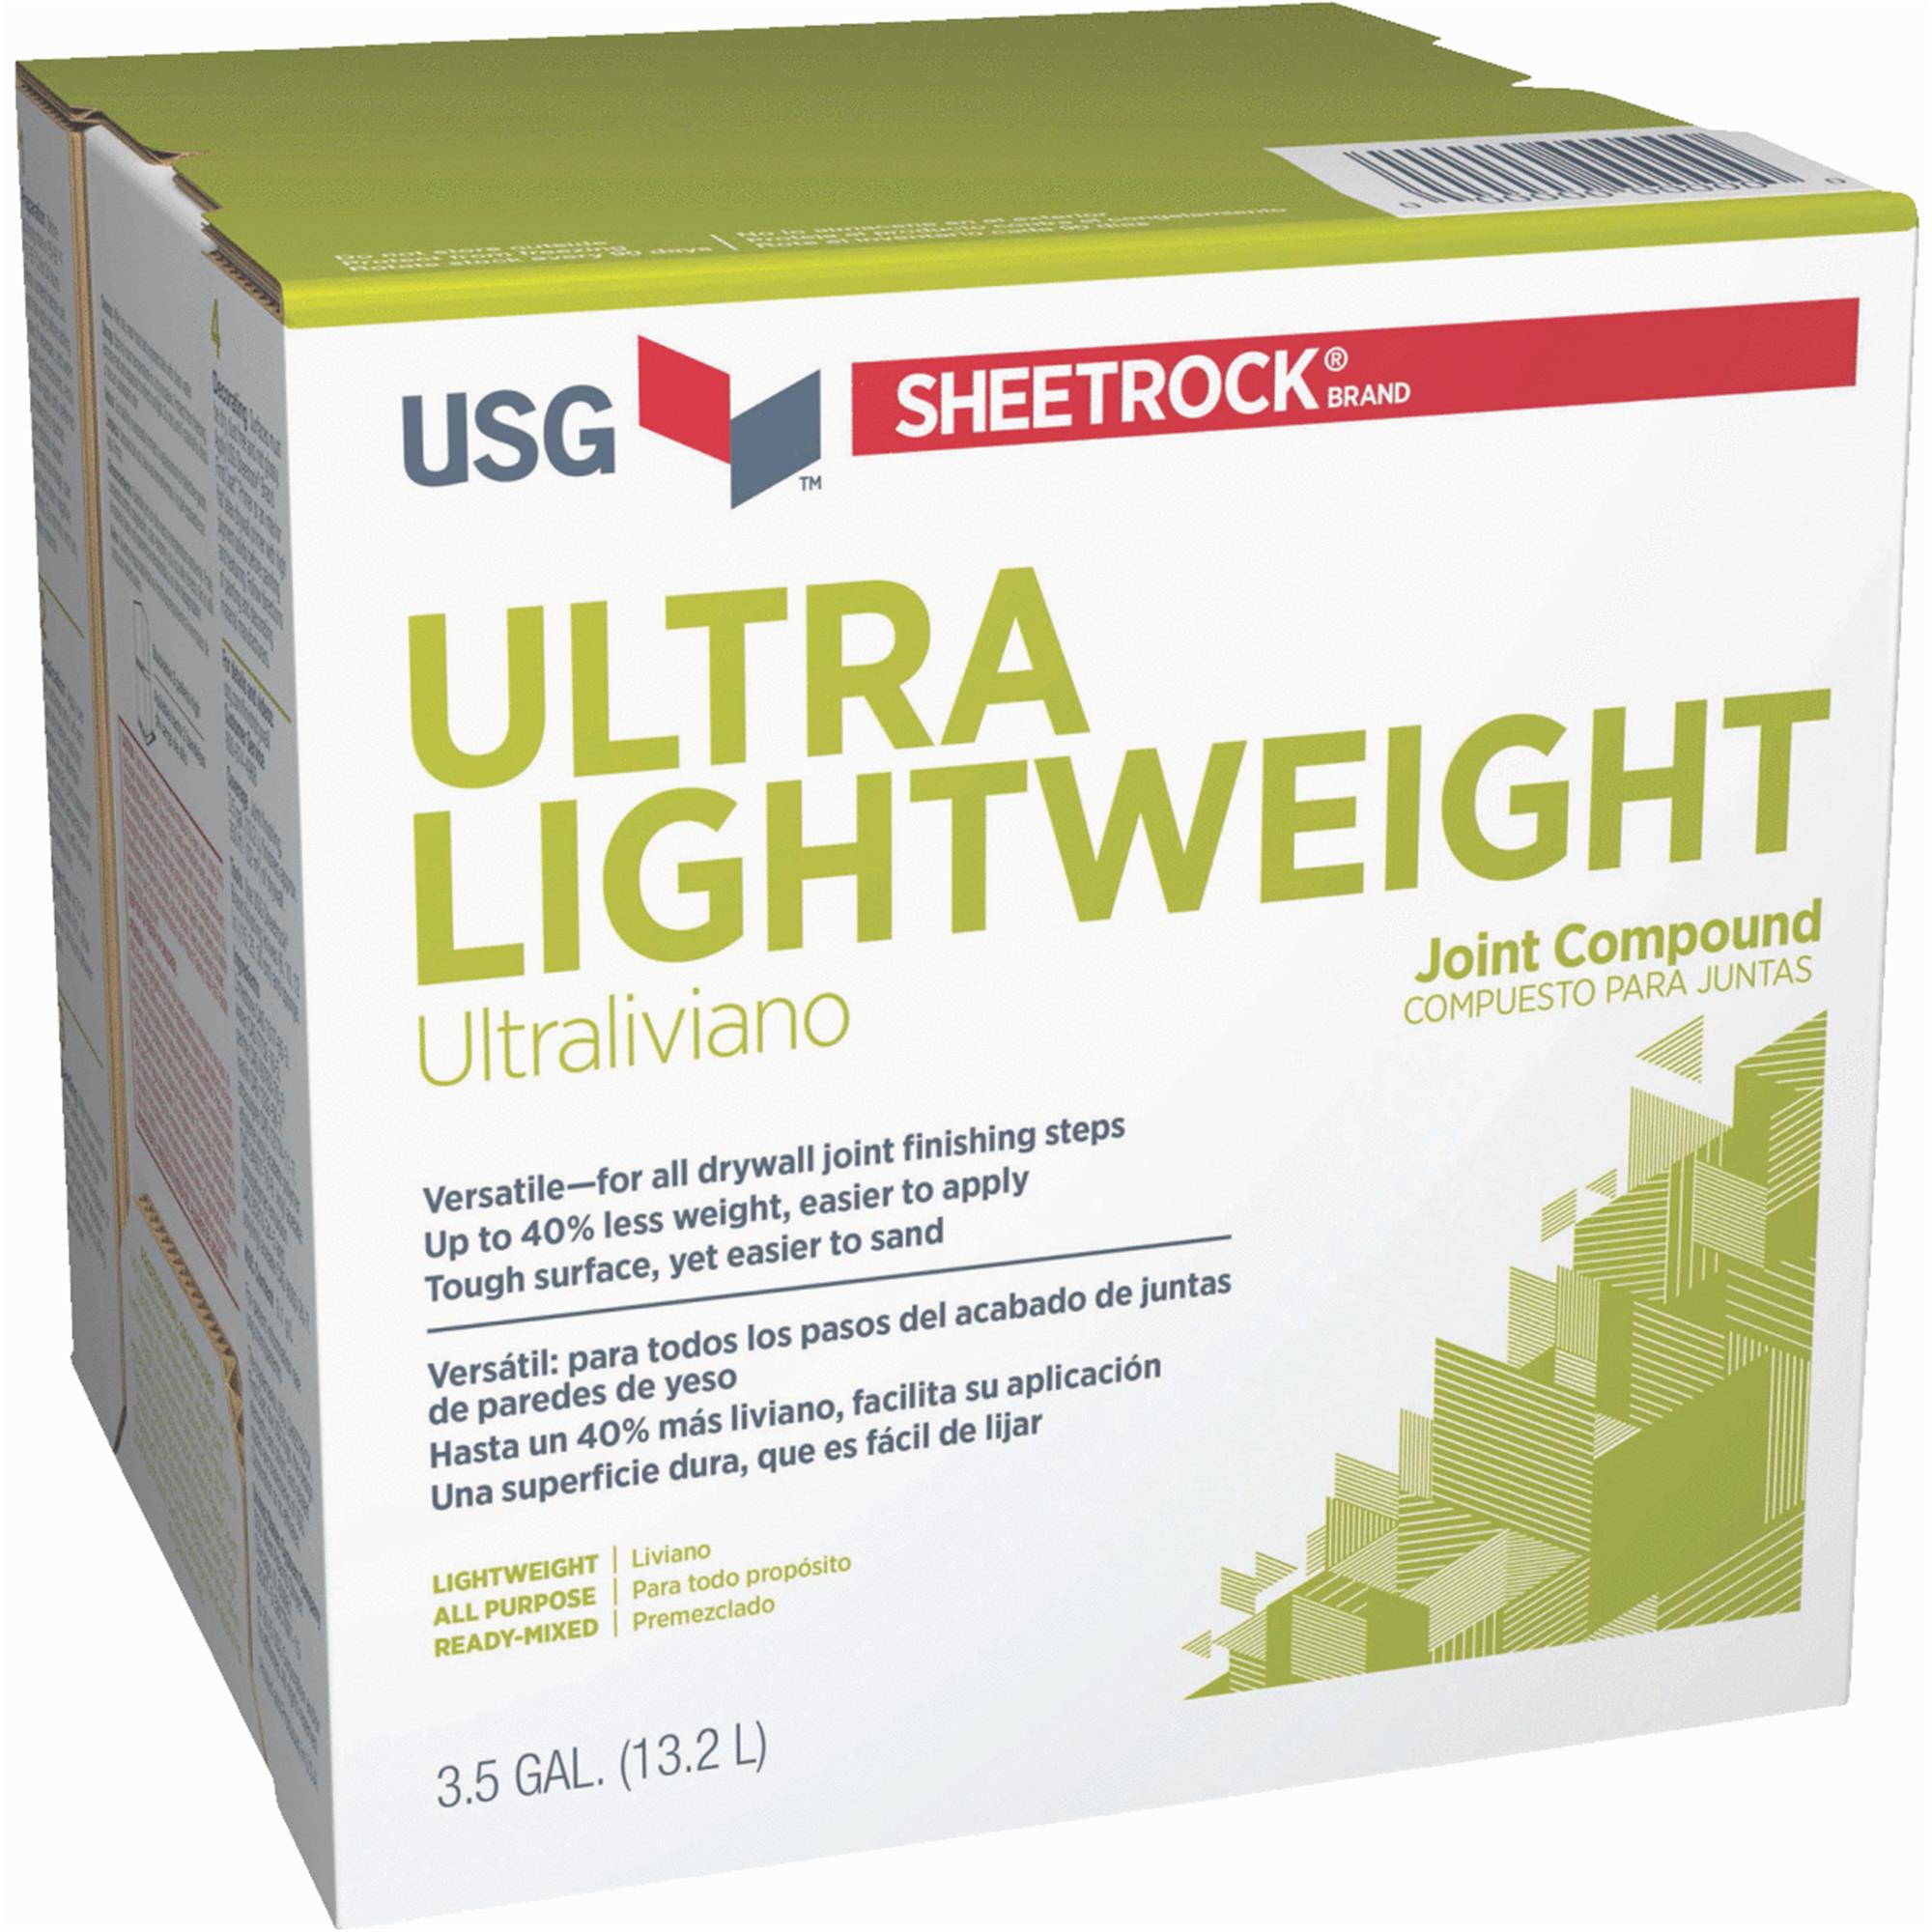 Sheetrock Pre-Mixed Ultra Lightweight All-Purpose Drywall Joint Compound